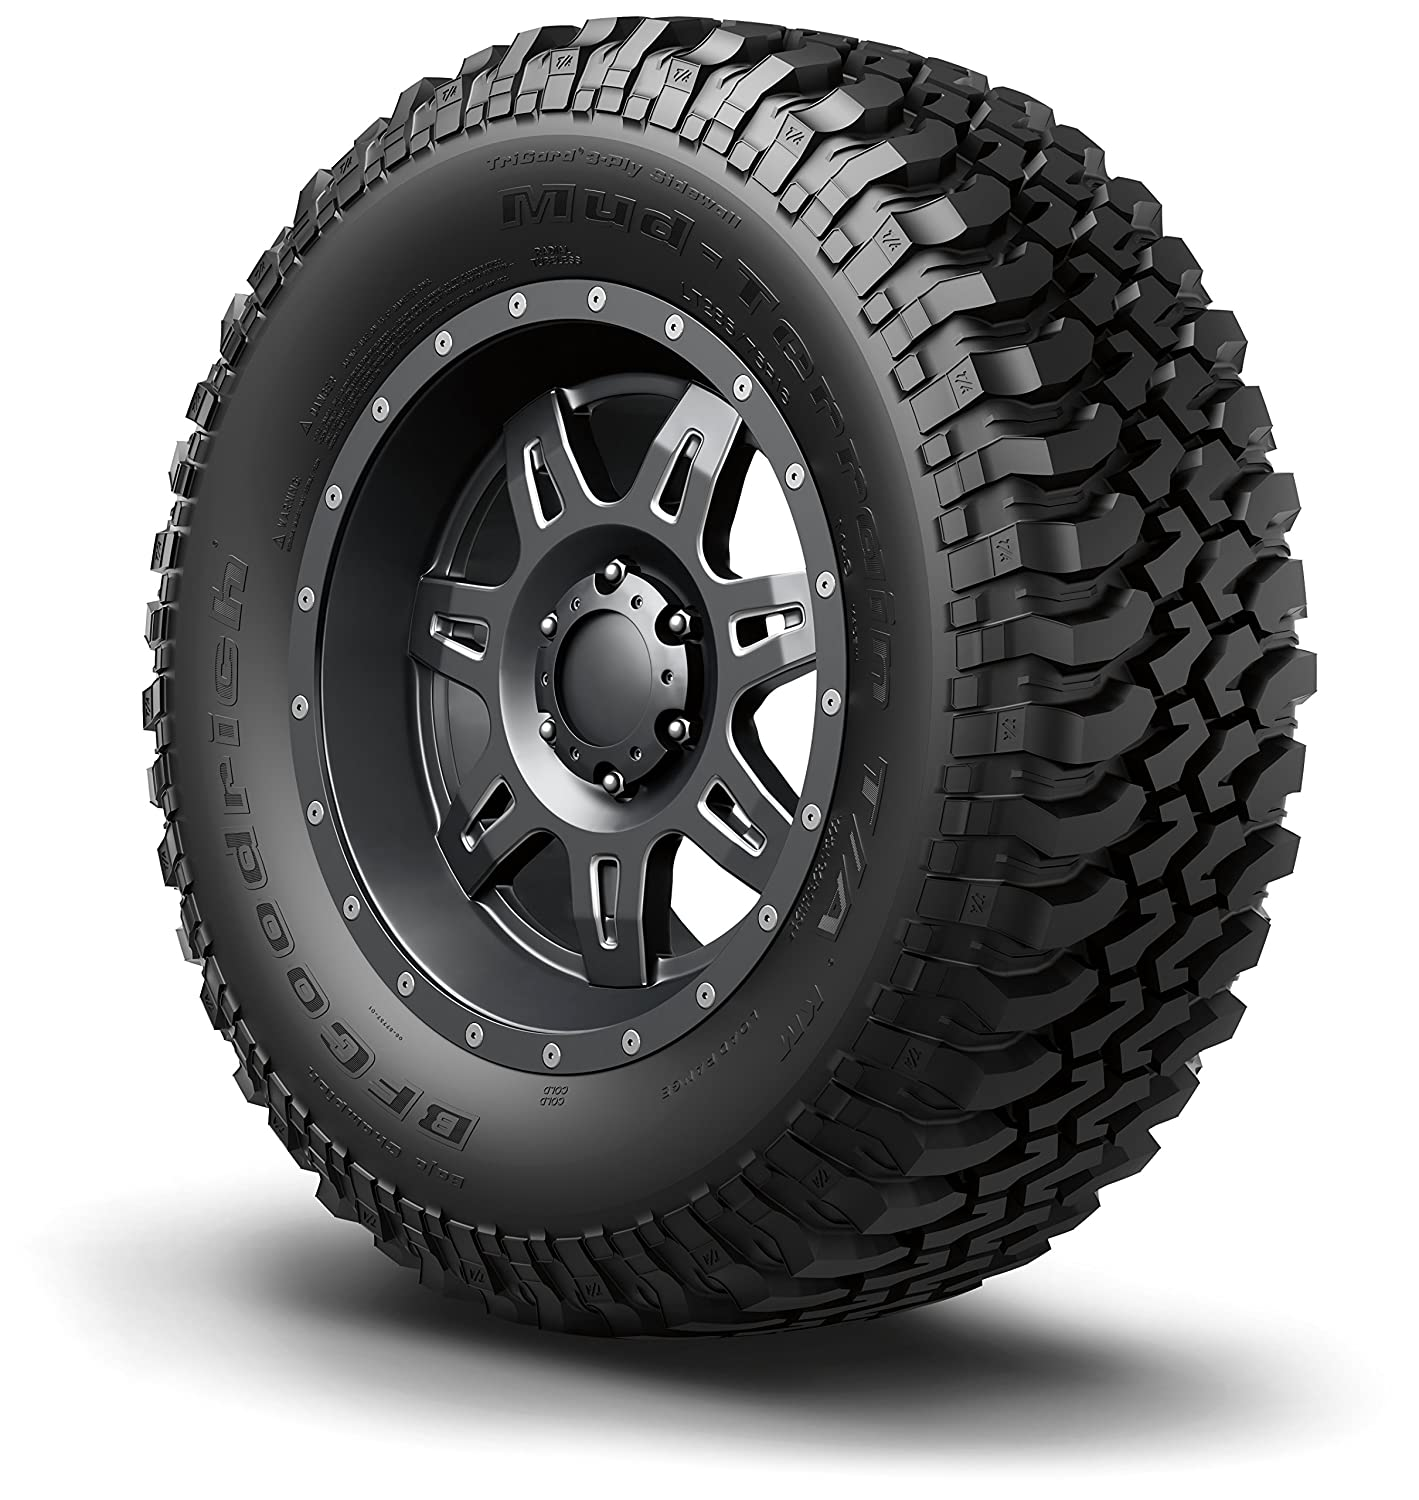 Bfgoodrich Mud Terrain T A Km All Radial Tire 110 70 17 Tubeless Lt255 75r17 C 111q Tires Automotive